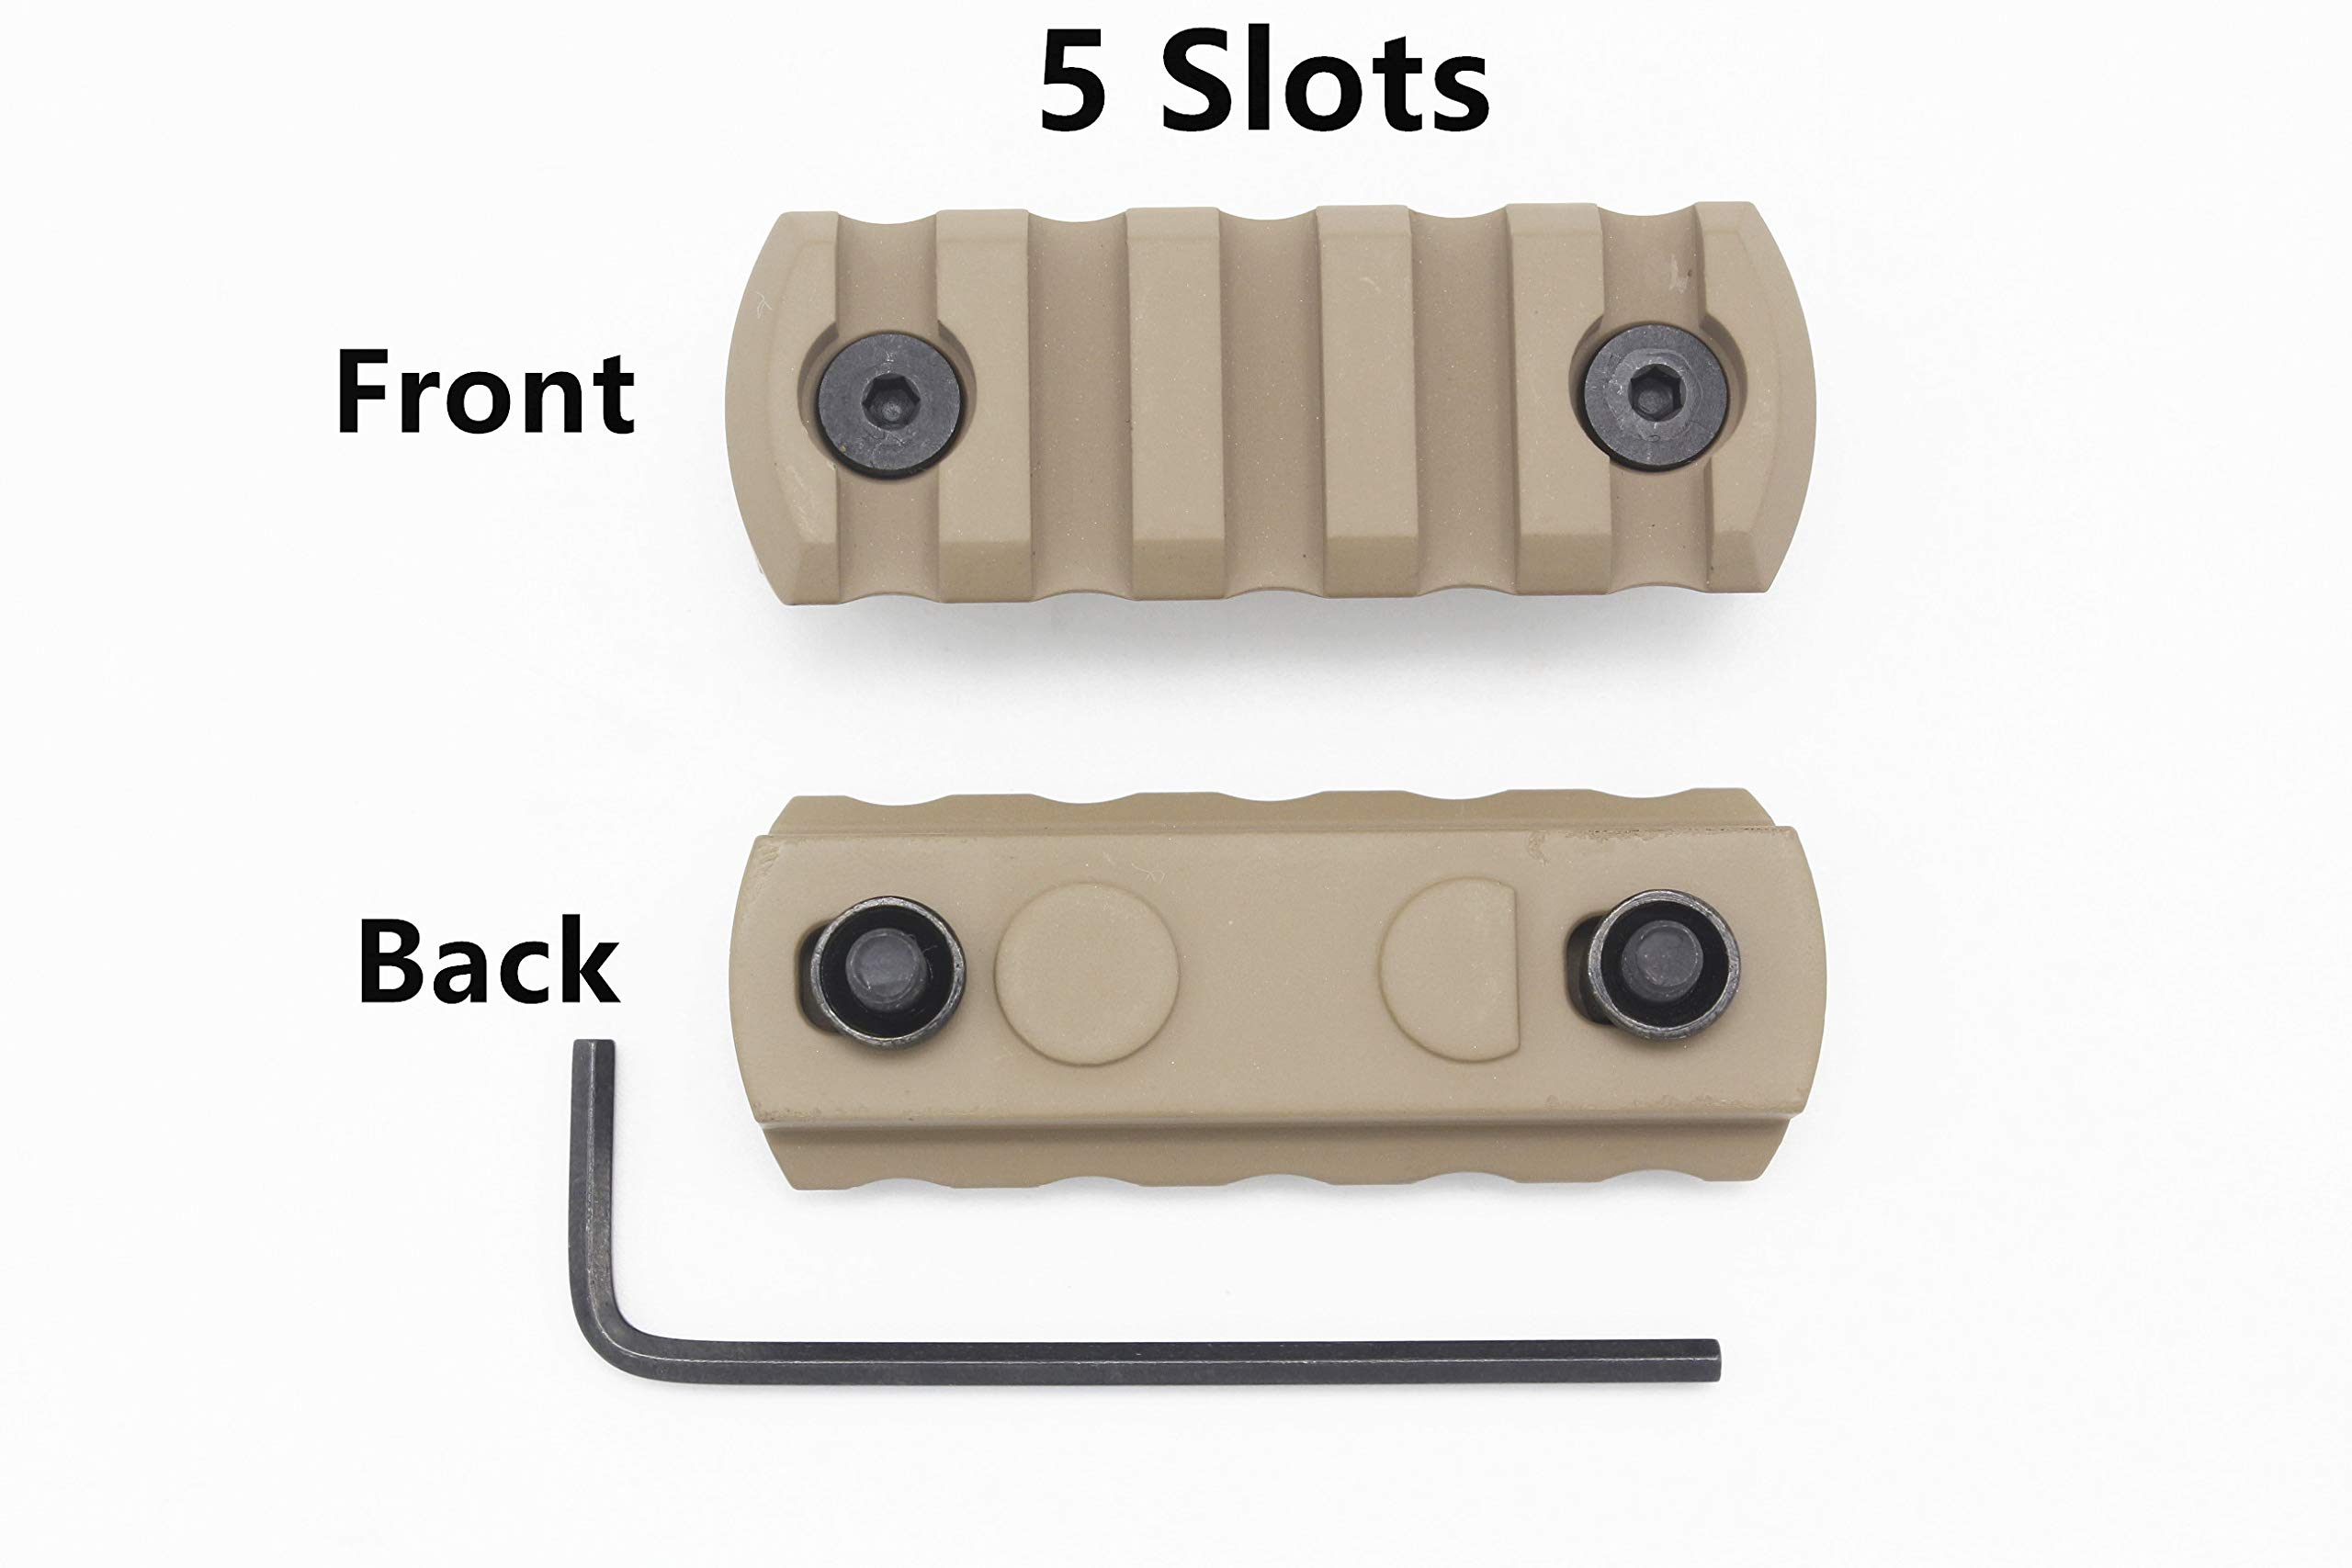 Active-8 Keymod Picatinny Rail, 5-Slot Lightweight Aluminum Weaver Rail Section Accessories for Keymod Rail System by Active-8